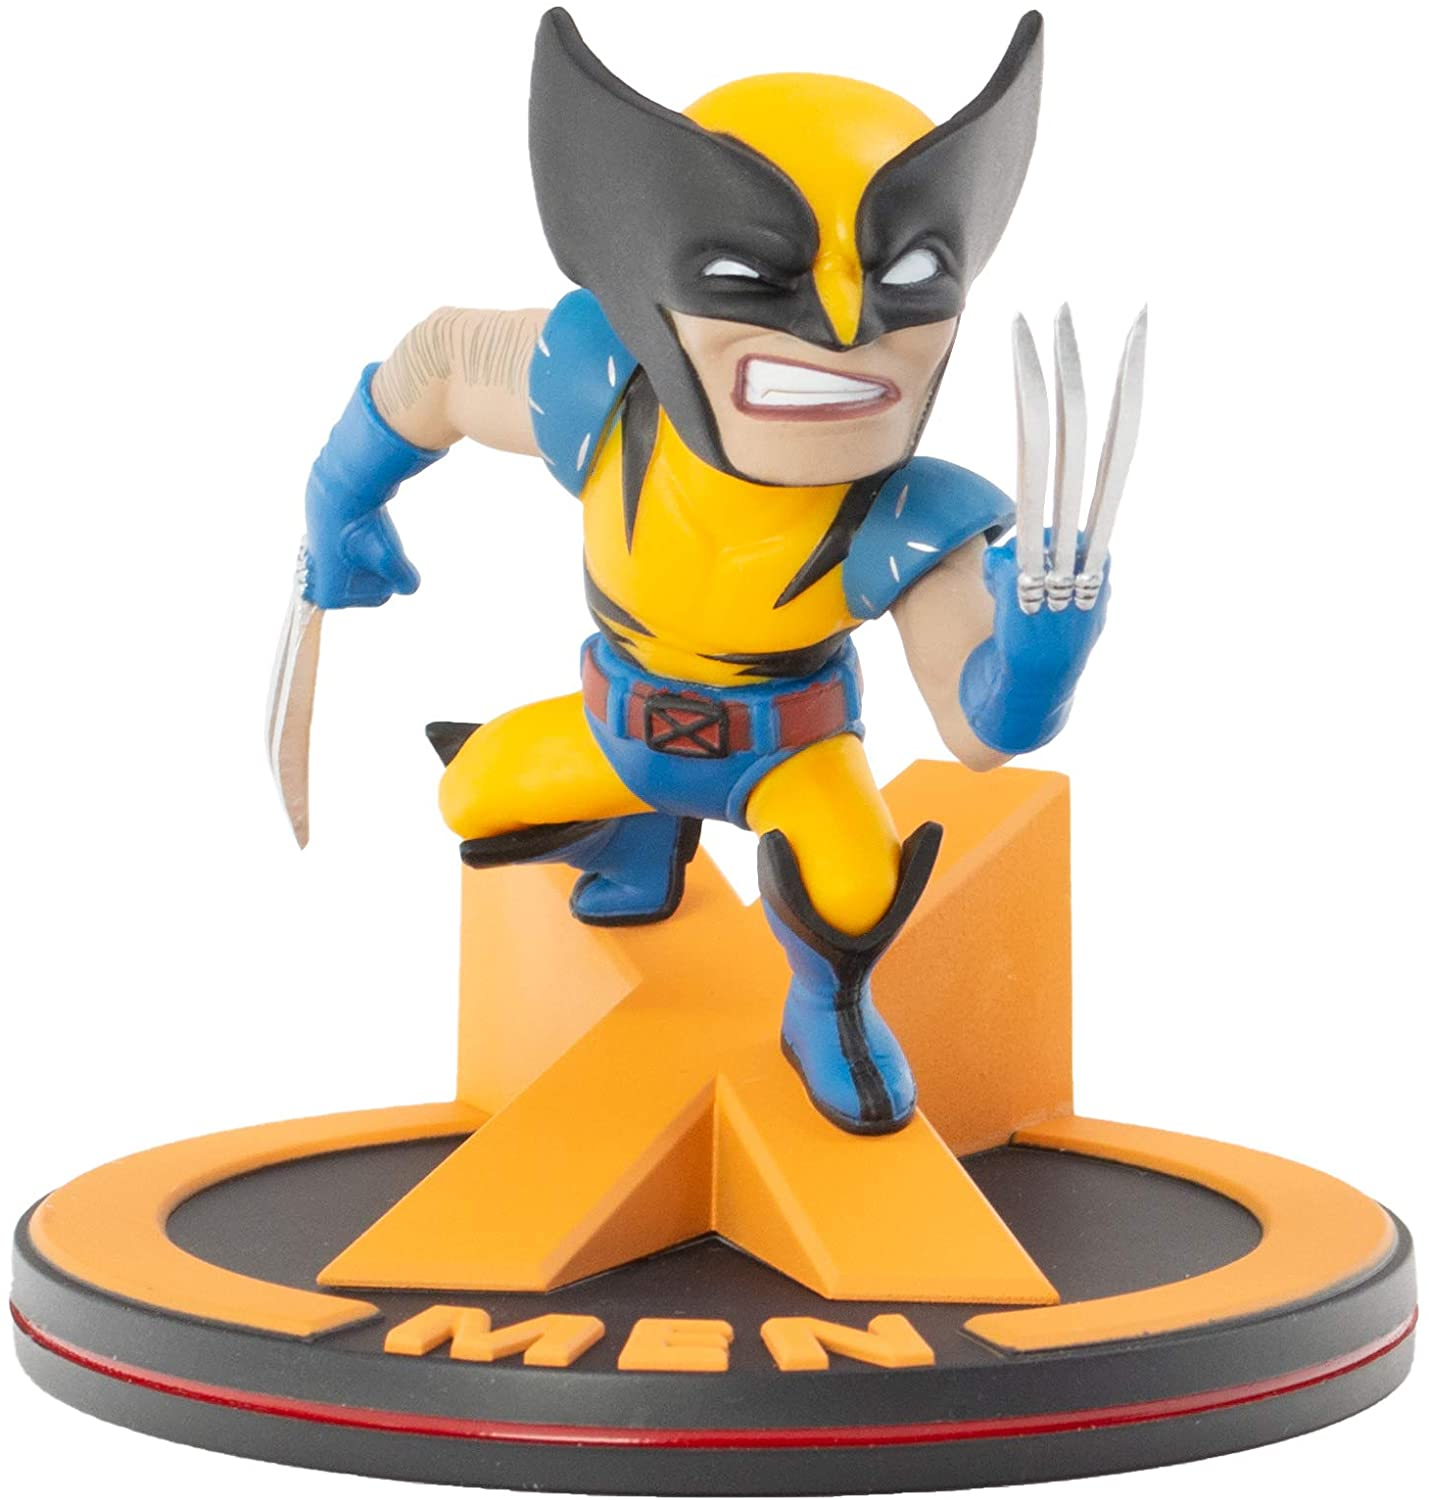 Wolverine - X-Men - Marvel - Q-Fig - Quantum Mechanix